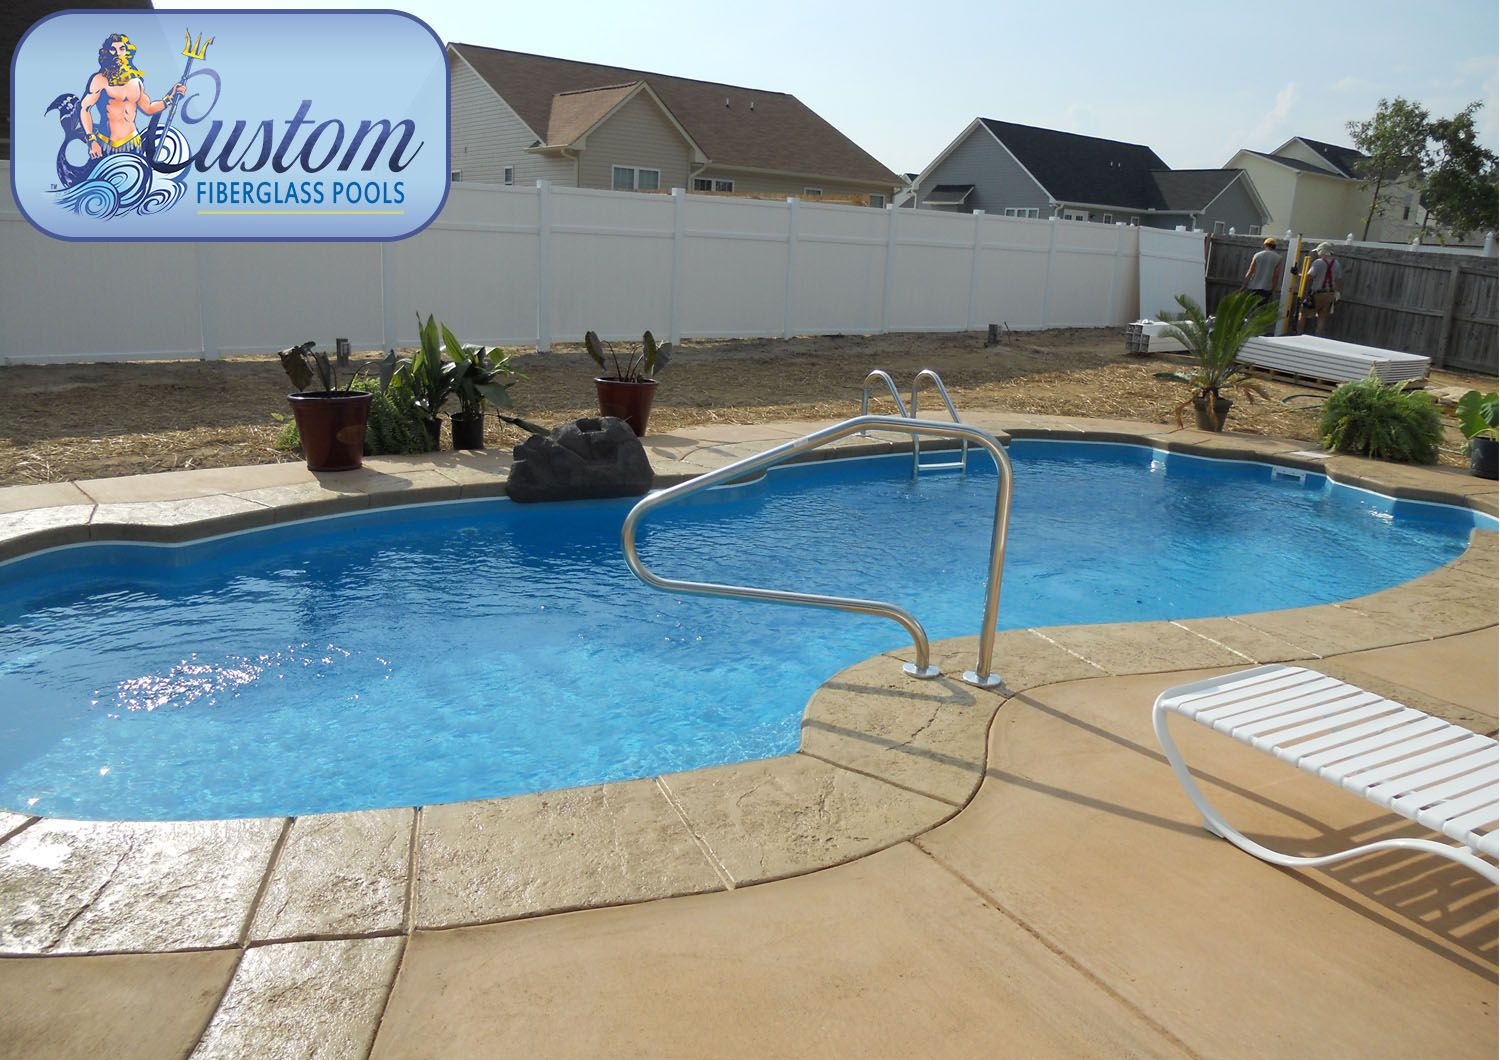 San Lucas 14x32 Awesome Pools is located in Apison Tennessee